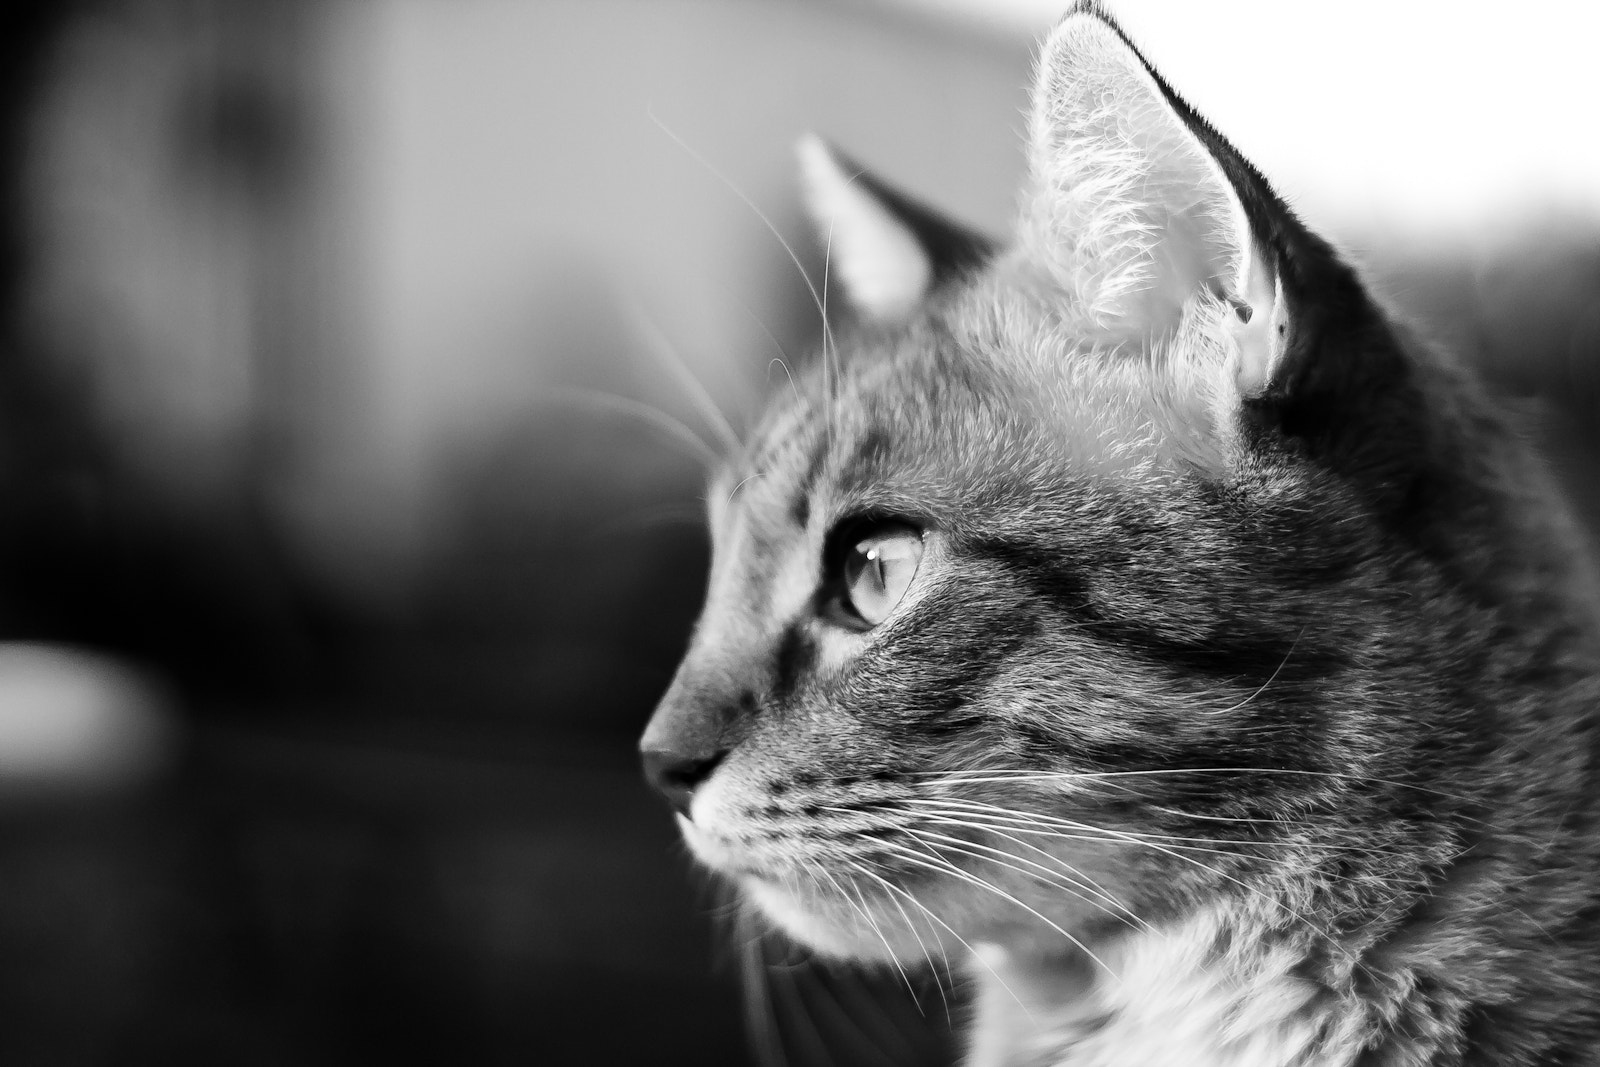 Photograph Black & White Cat by David Lierman on 500px